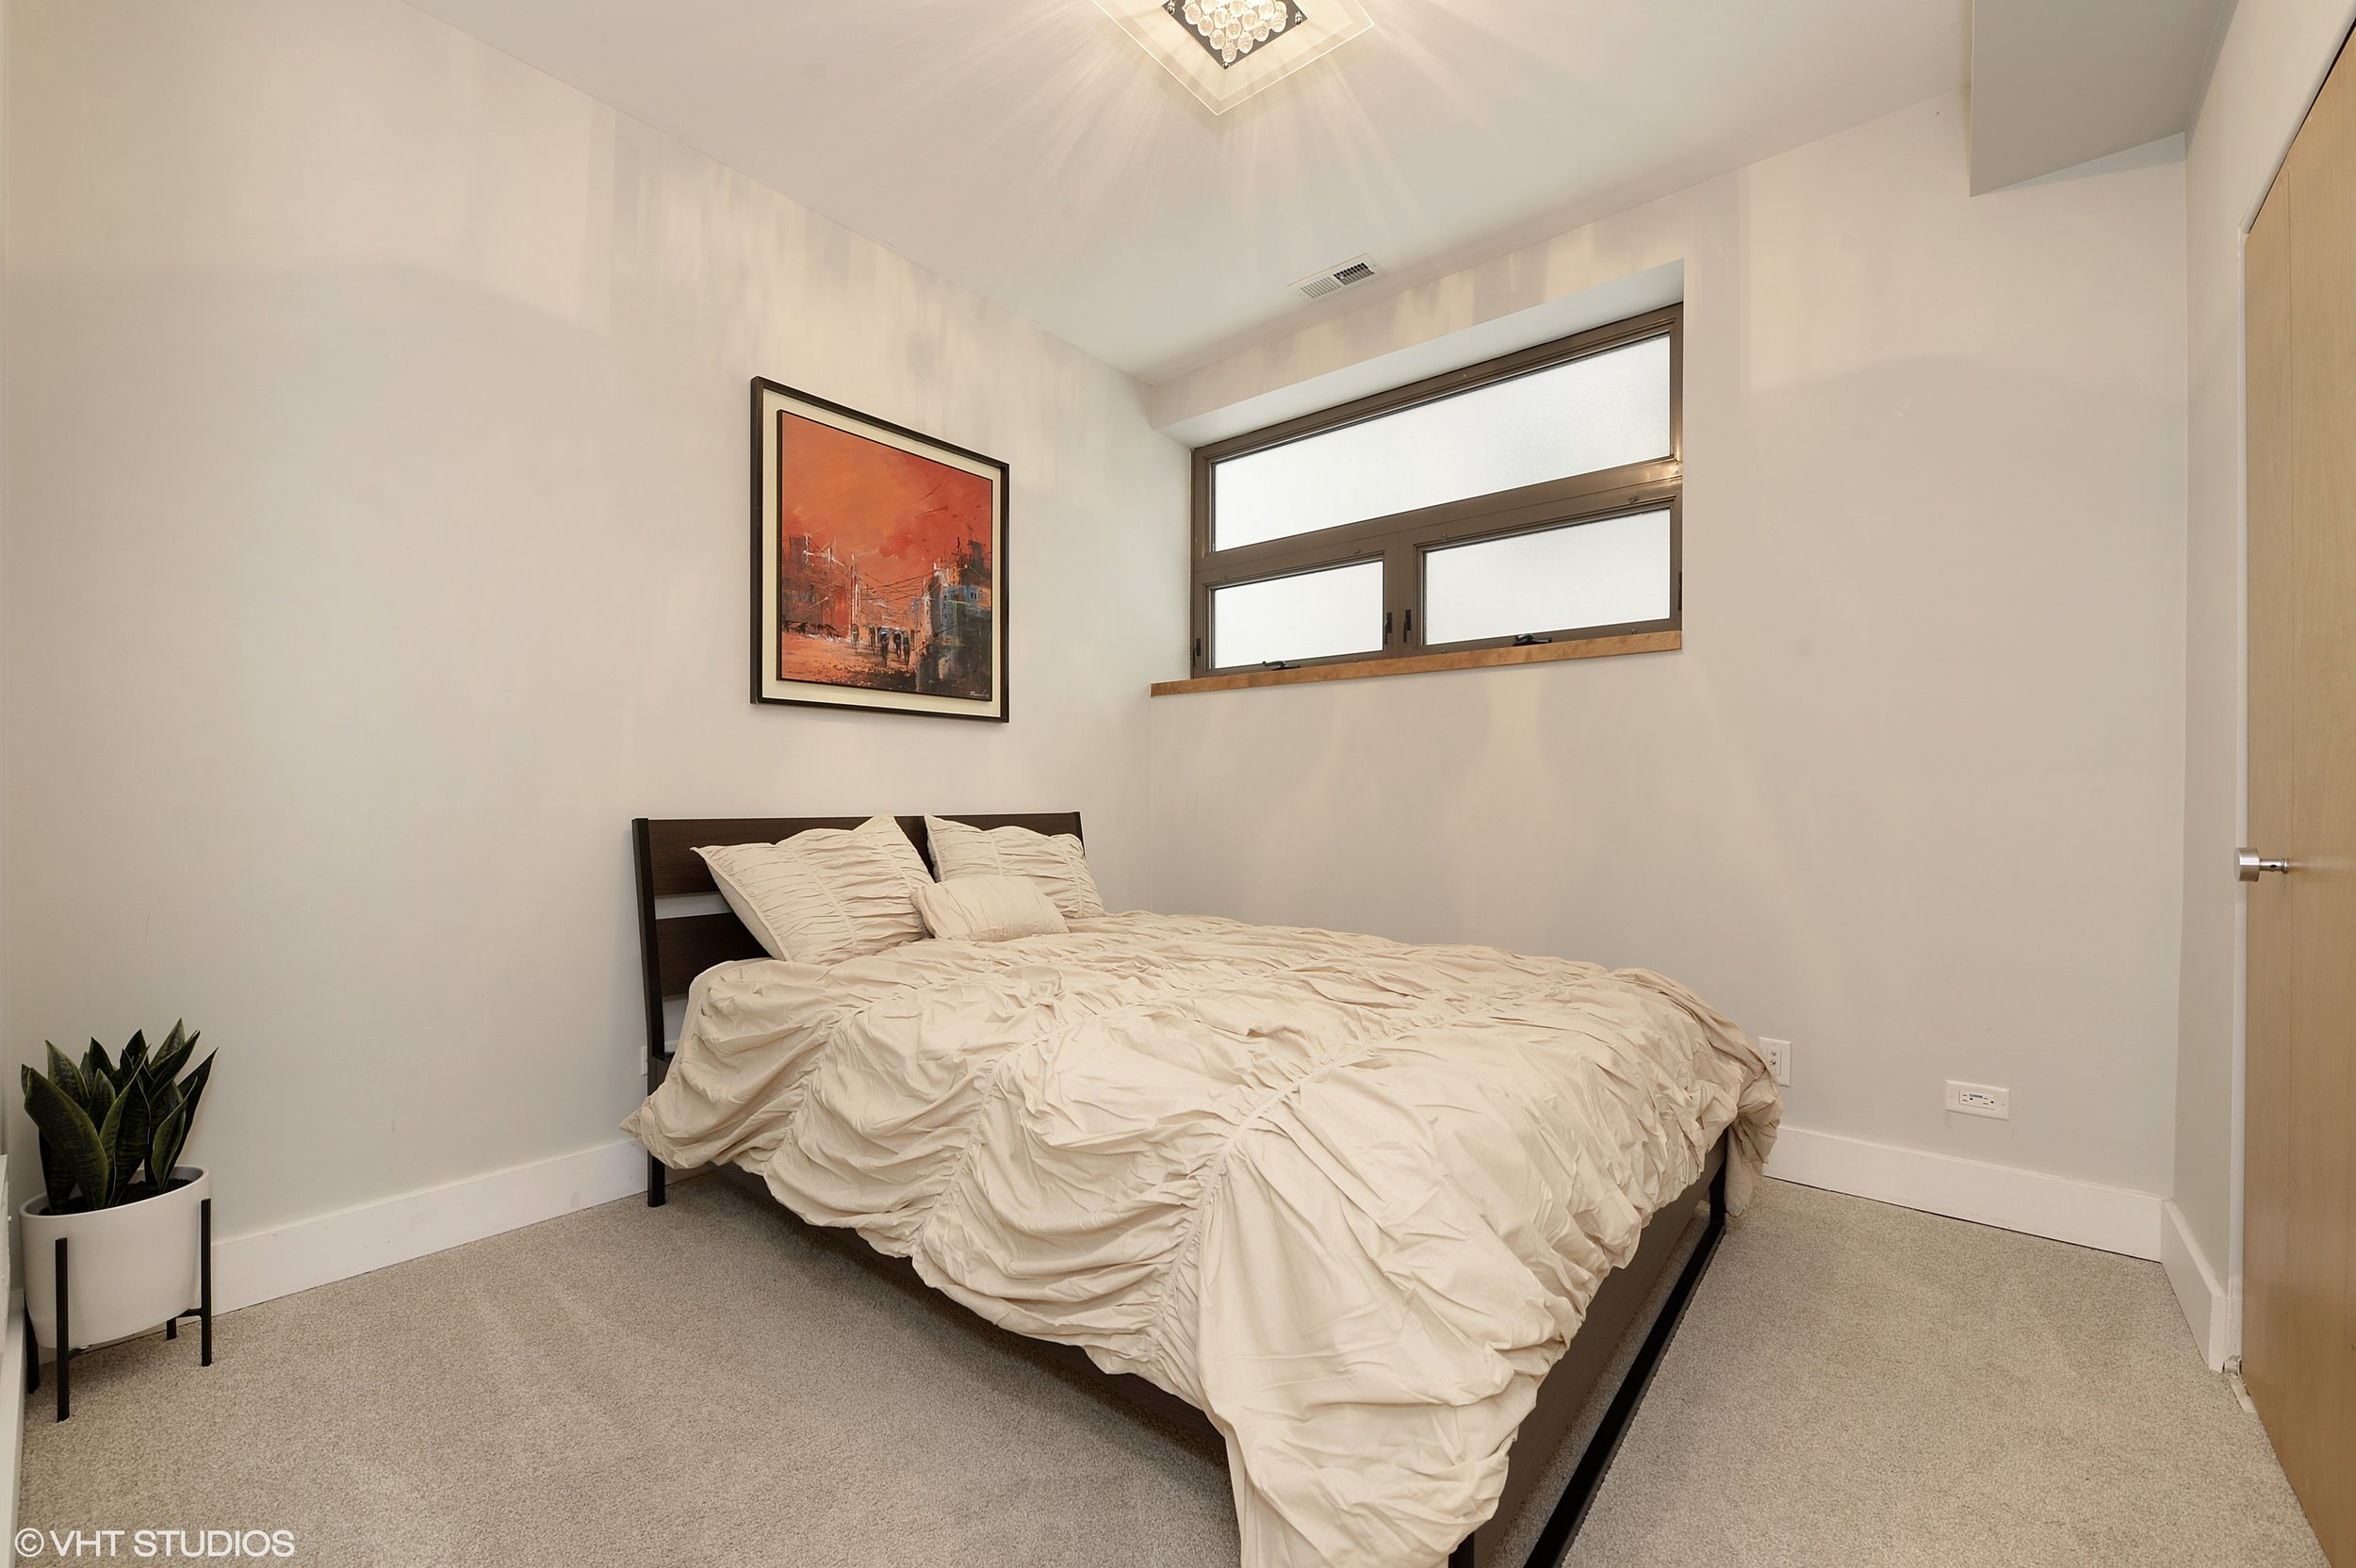 16_1529WestChestnutSt_101_154_3rdBedroom_HiRes.jpg